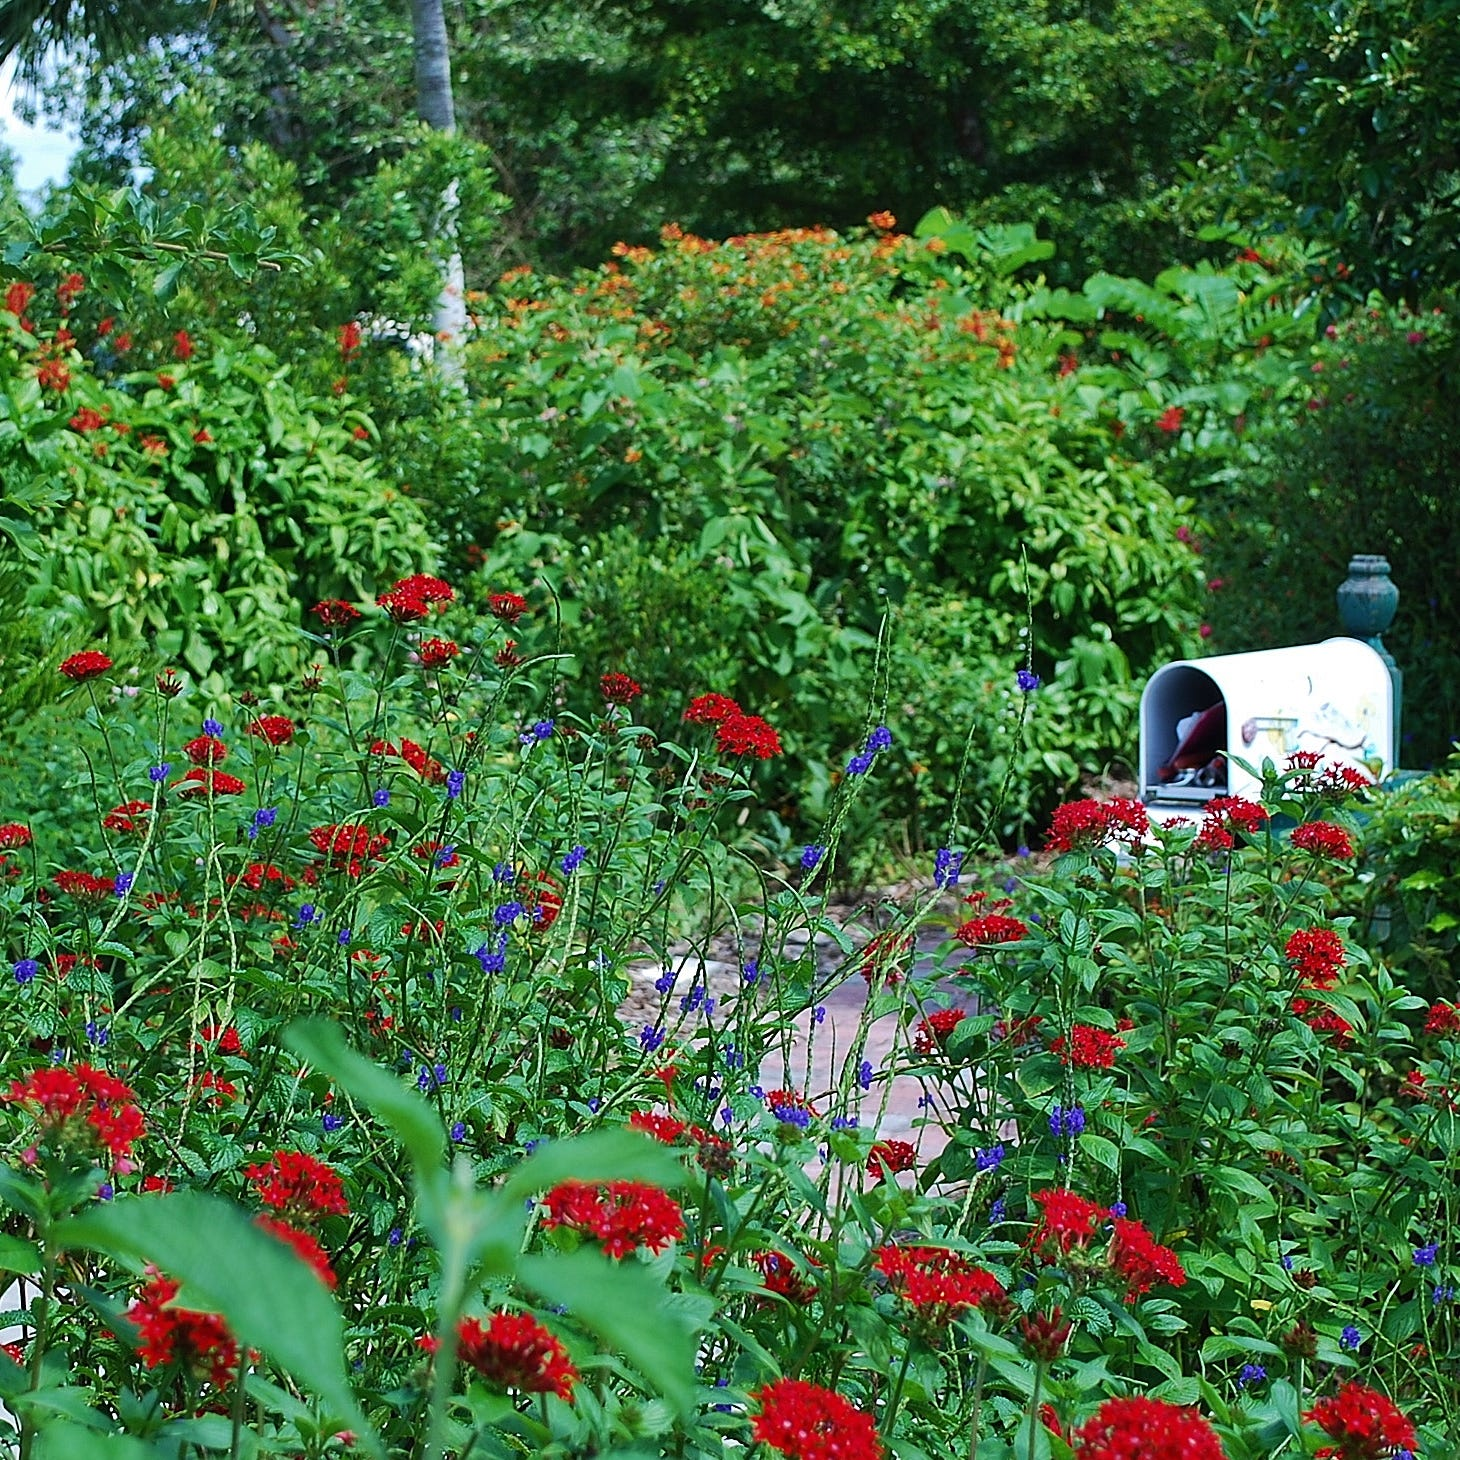 Gift garden and friendly pollinators by planting beneficial plants